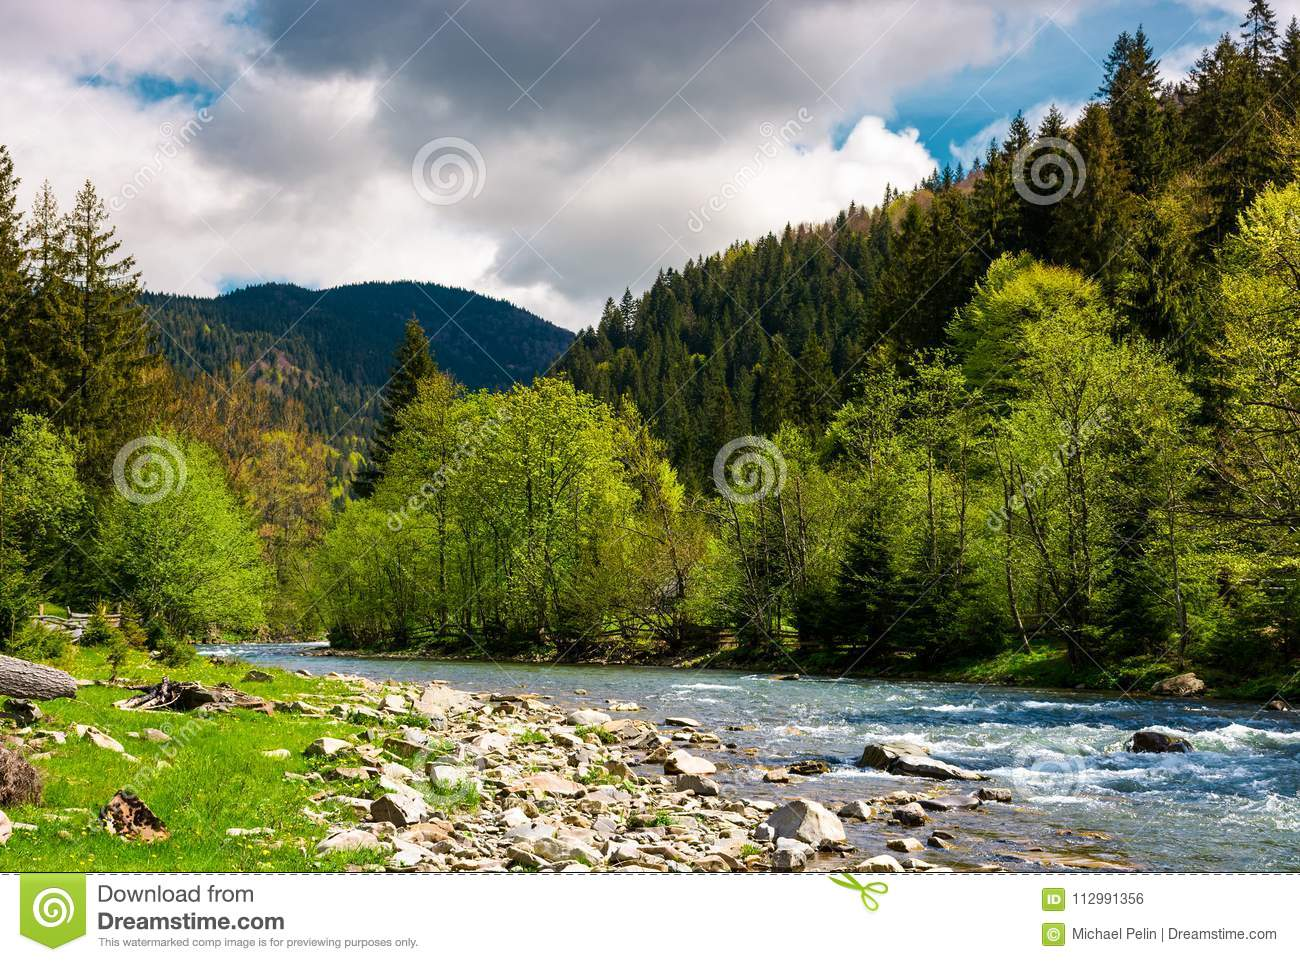 Forest river with rocky shore in mountains